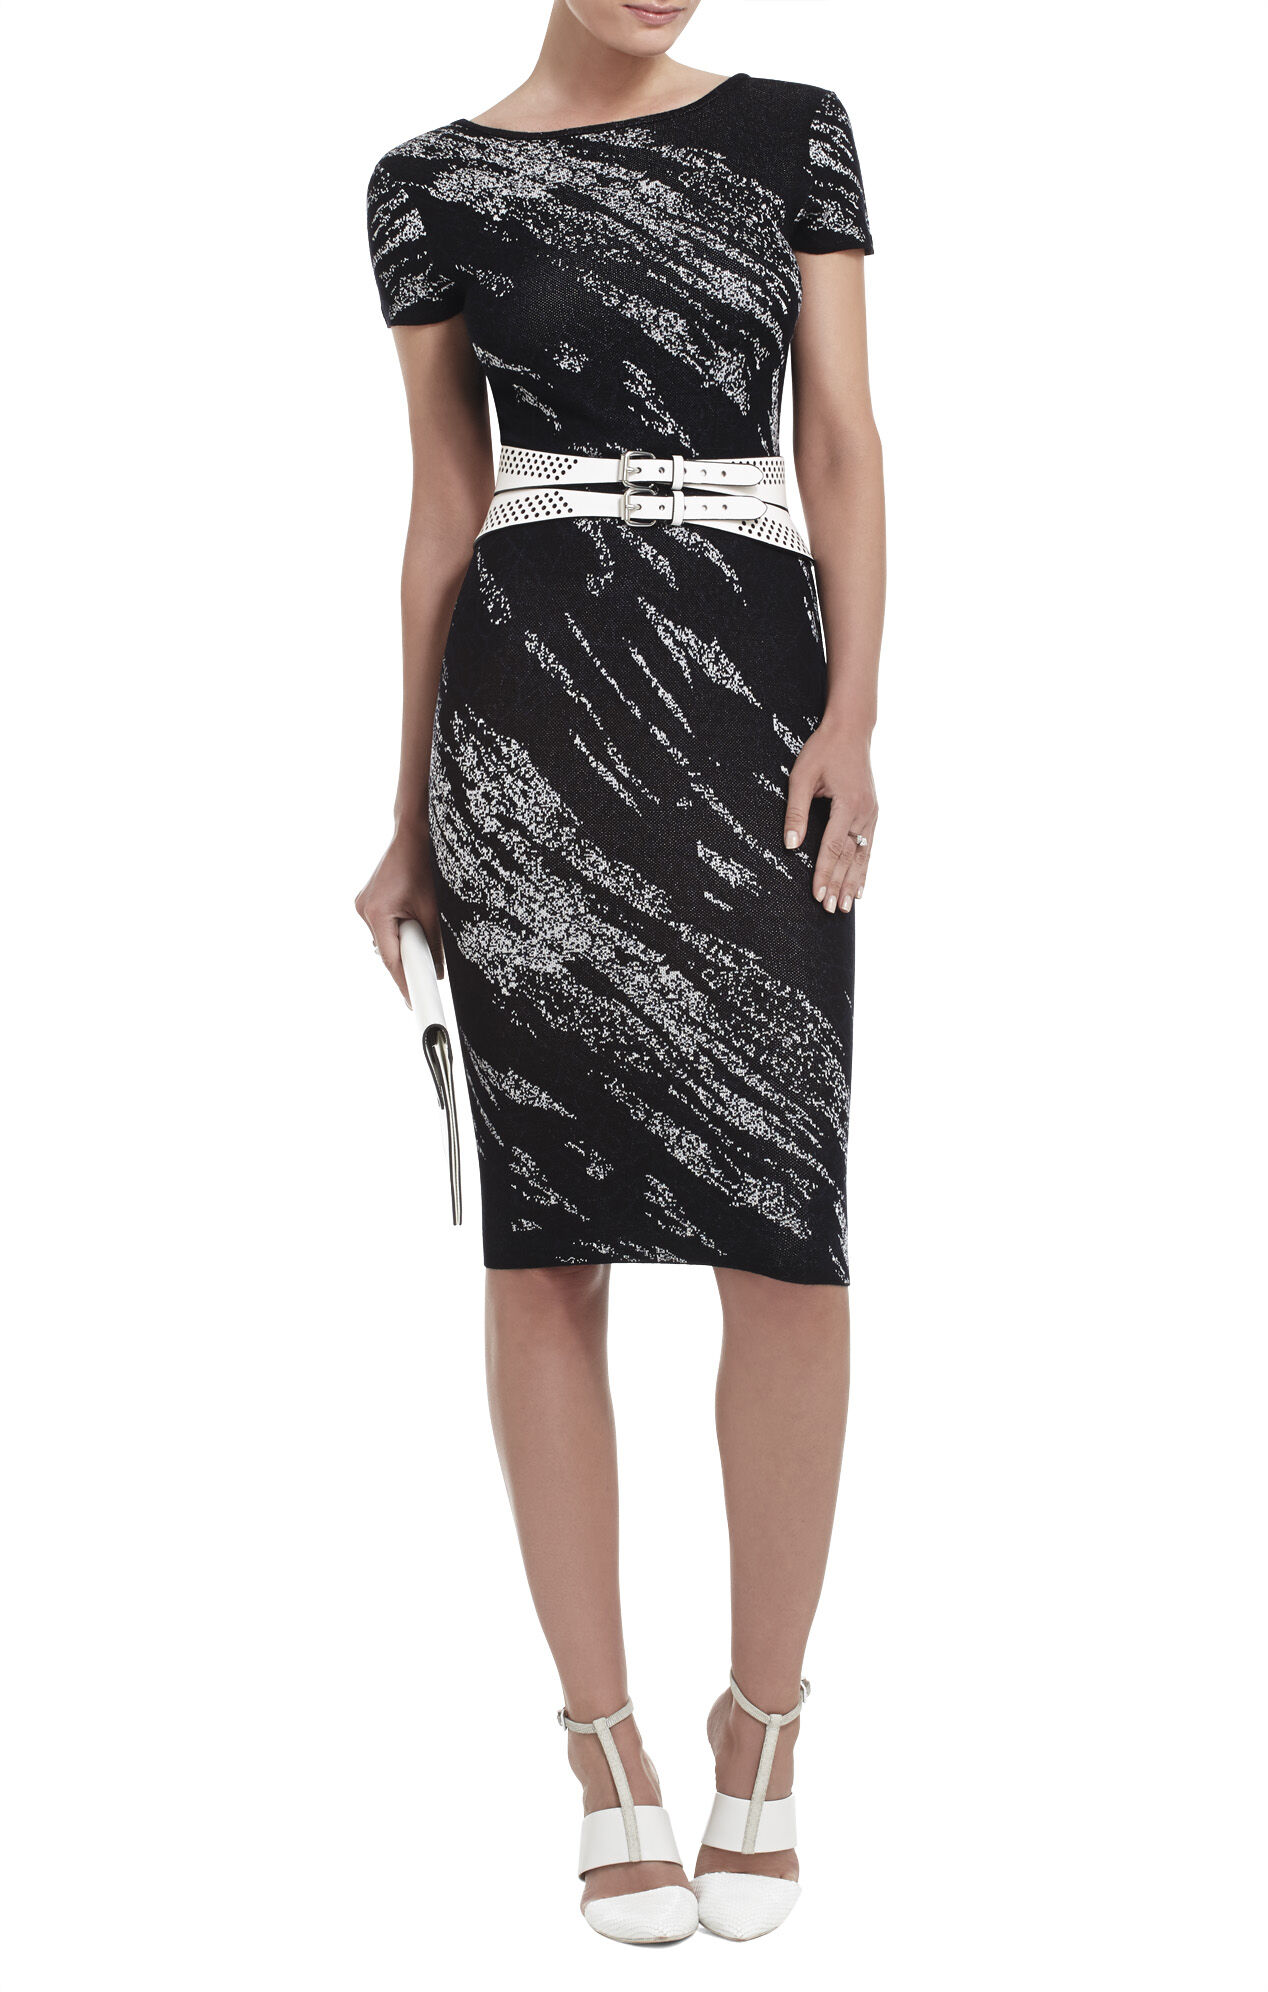 Jackee Crackled-Jacquard Dress